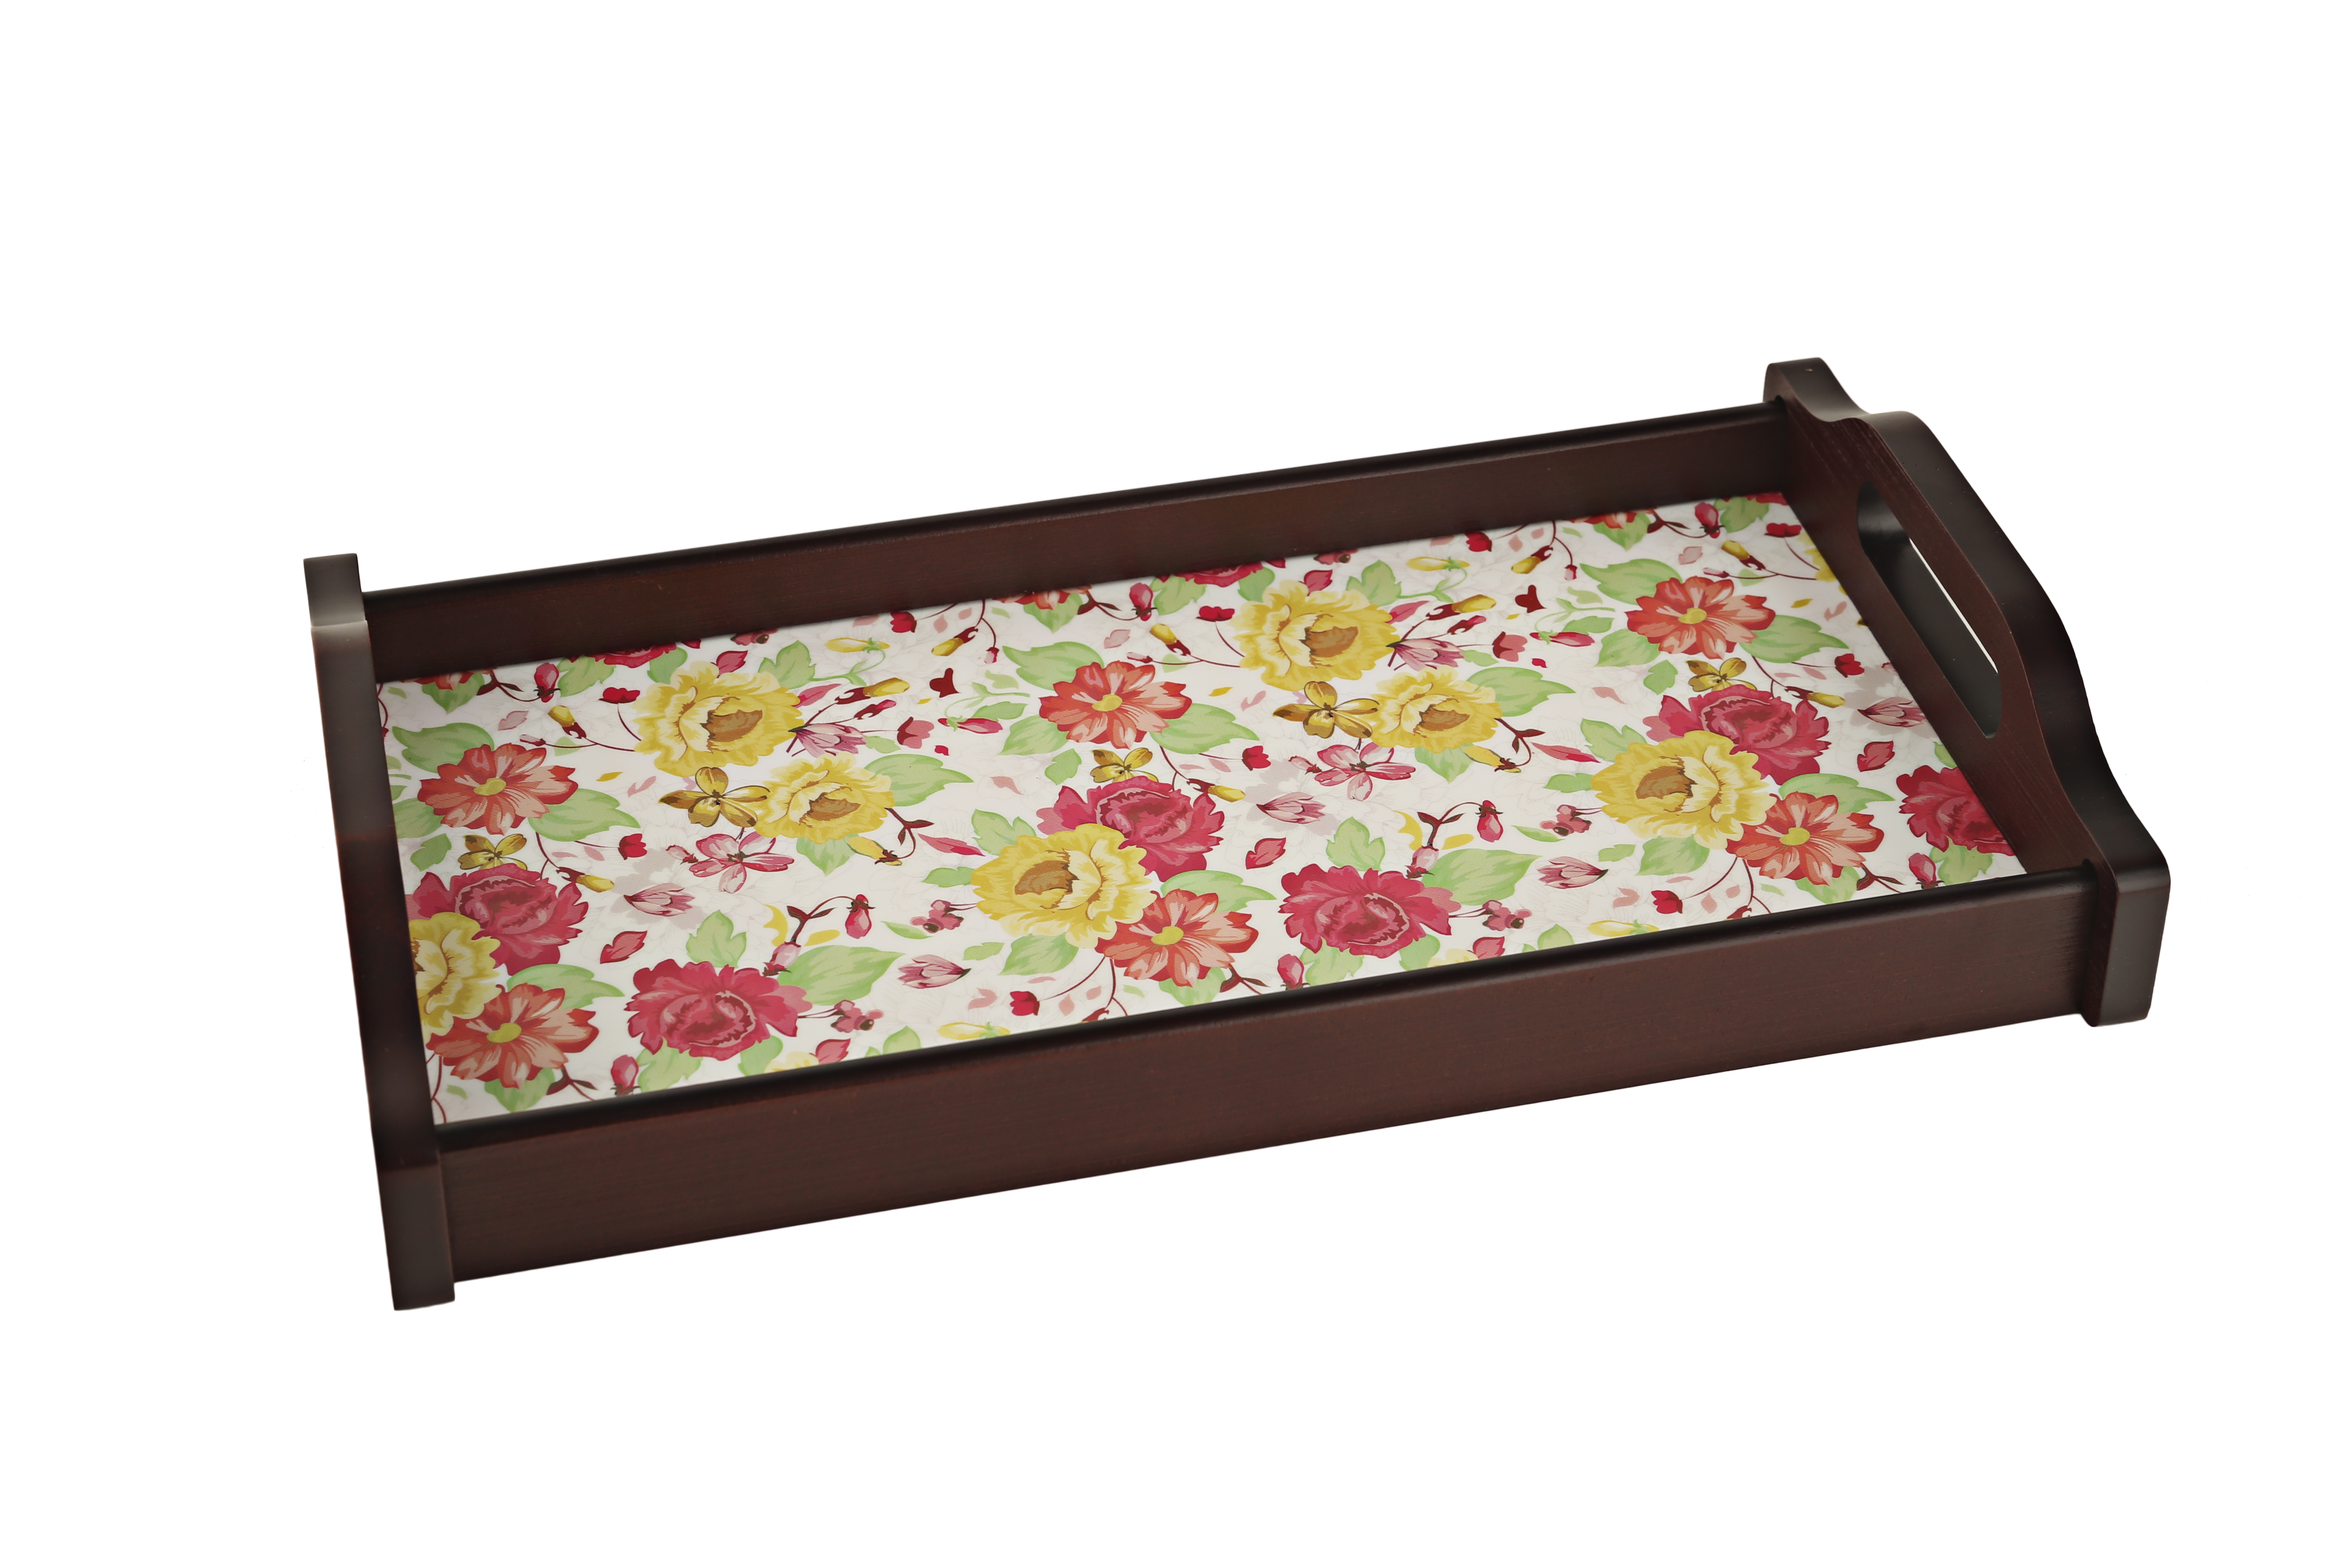 English Floral Small Timber Wood Trays in Multicolor Colour by Living Essence